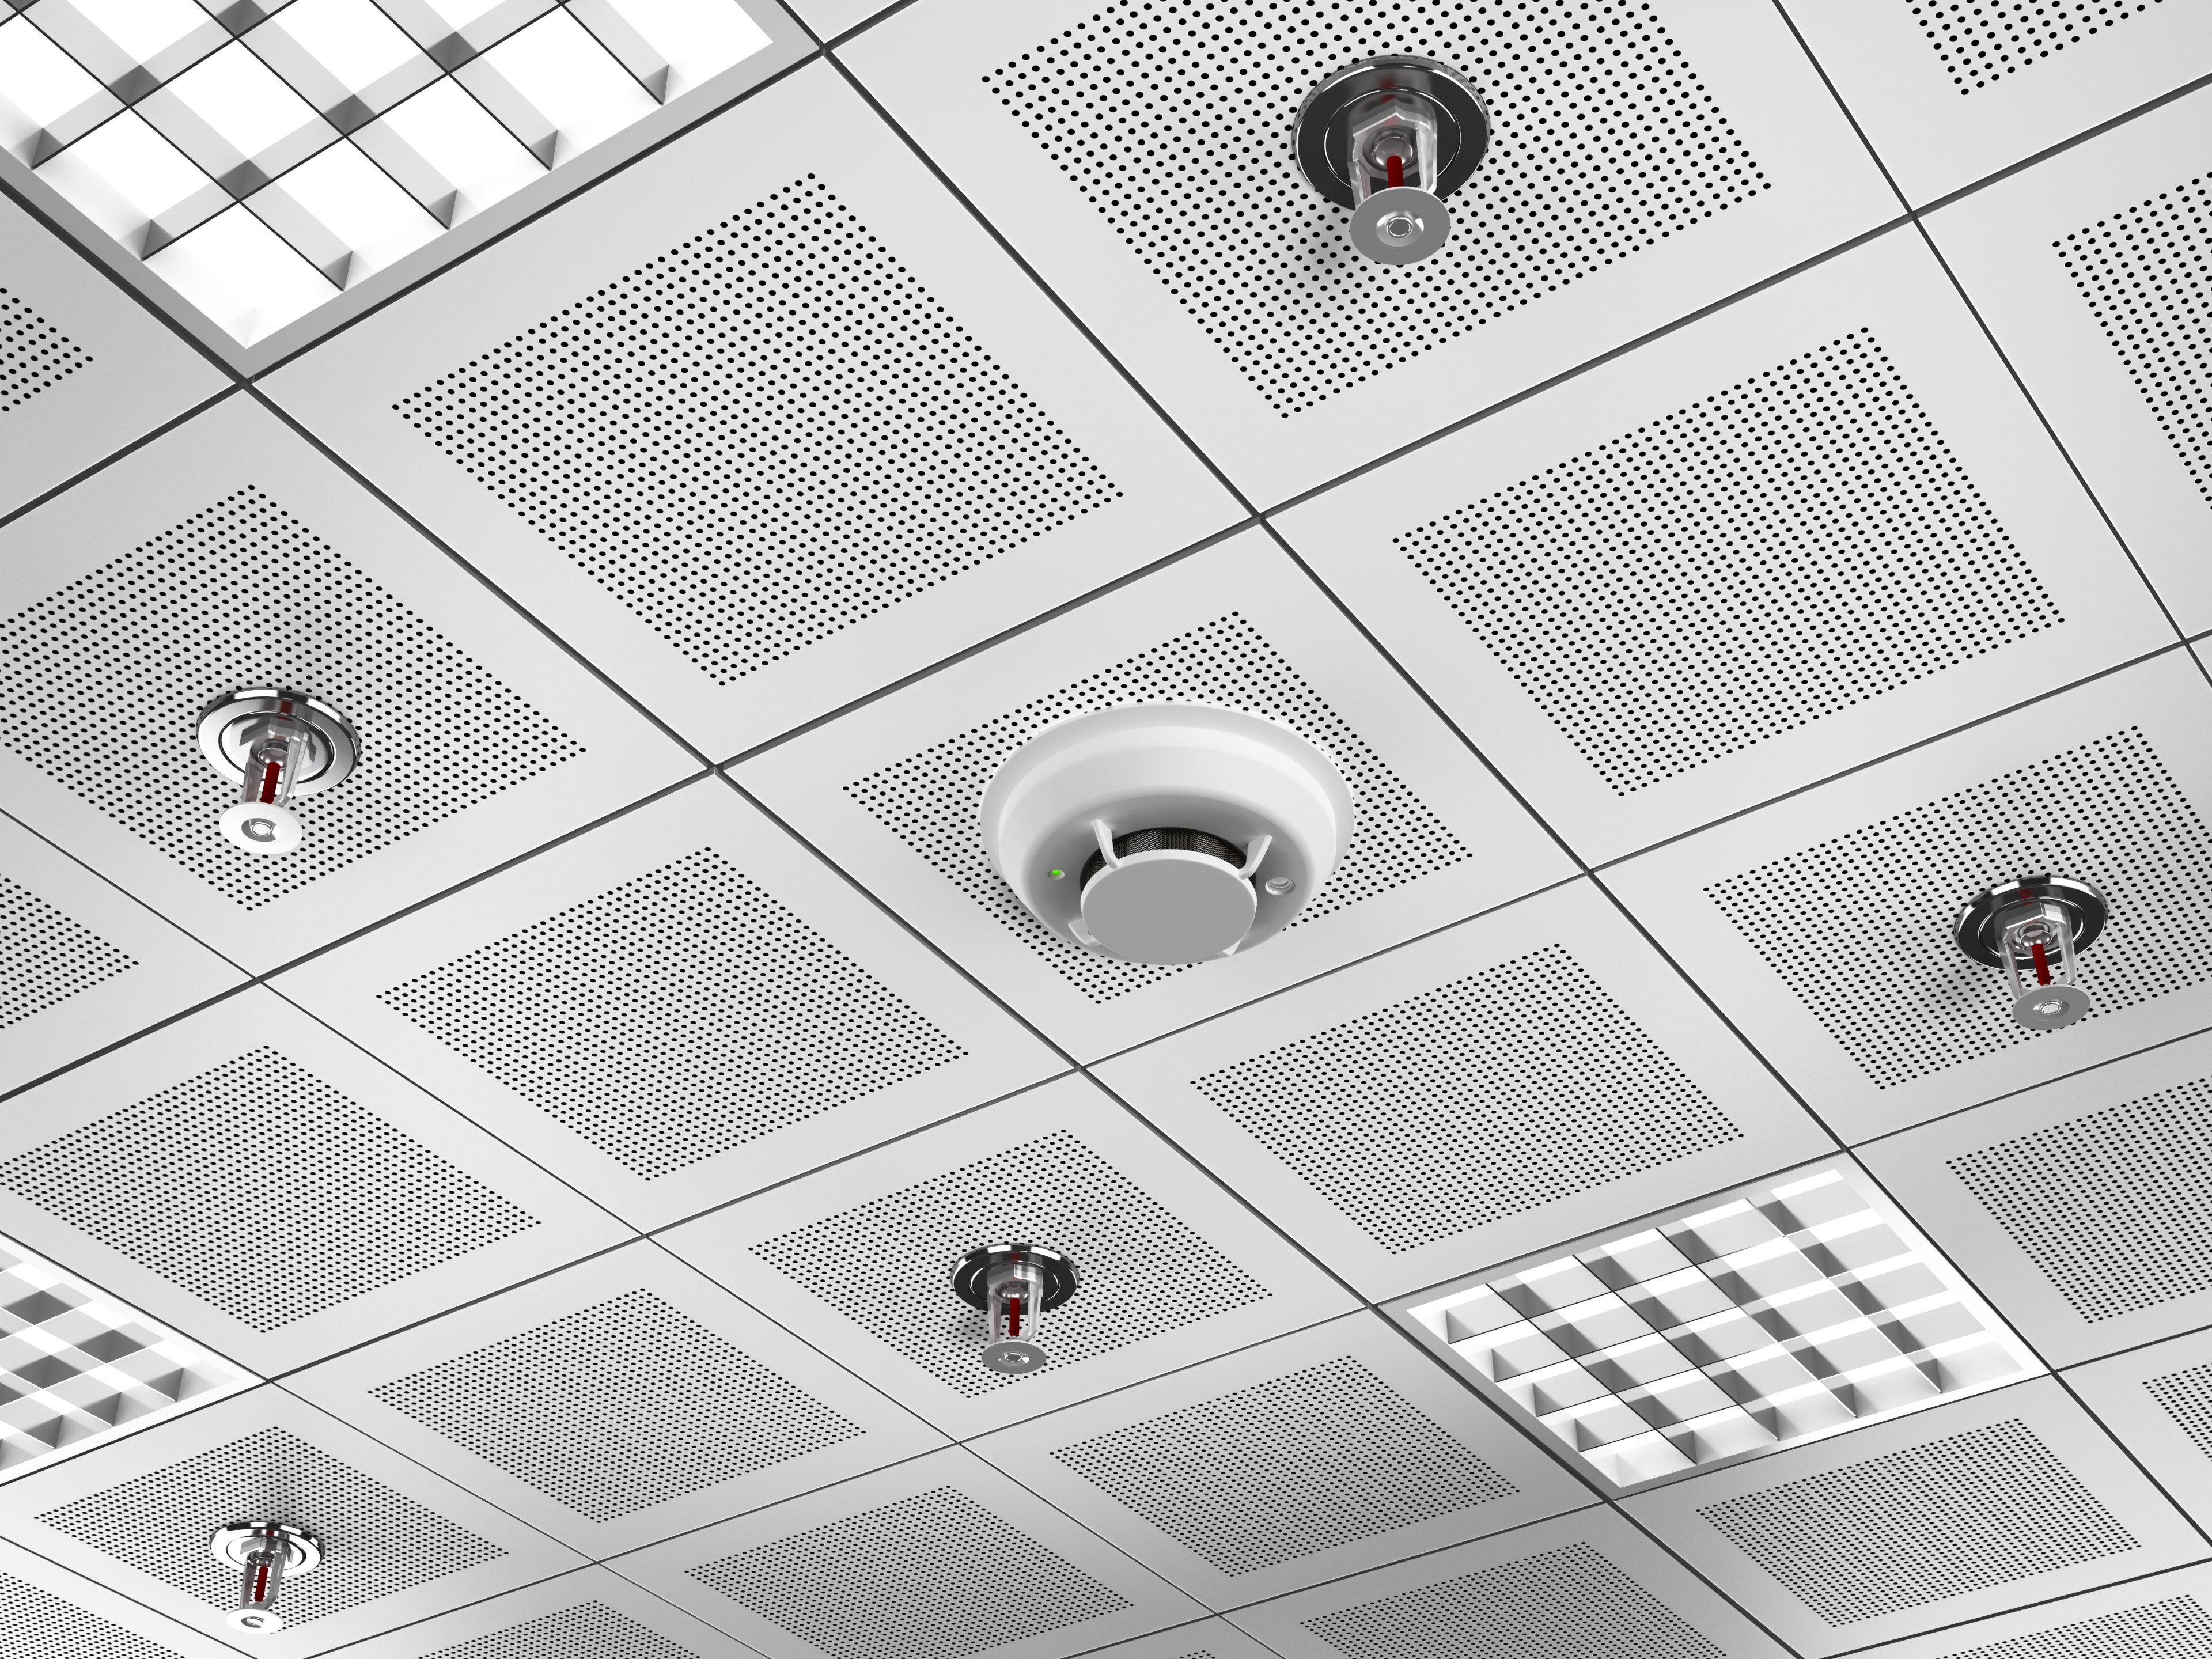 The Challenge Of Residential Fire Sprinkler Systems